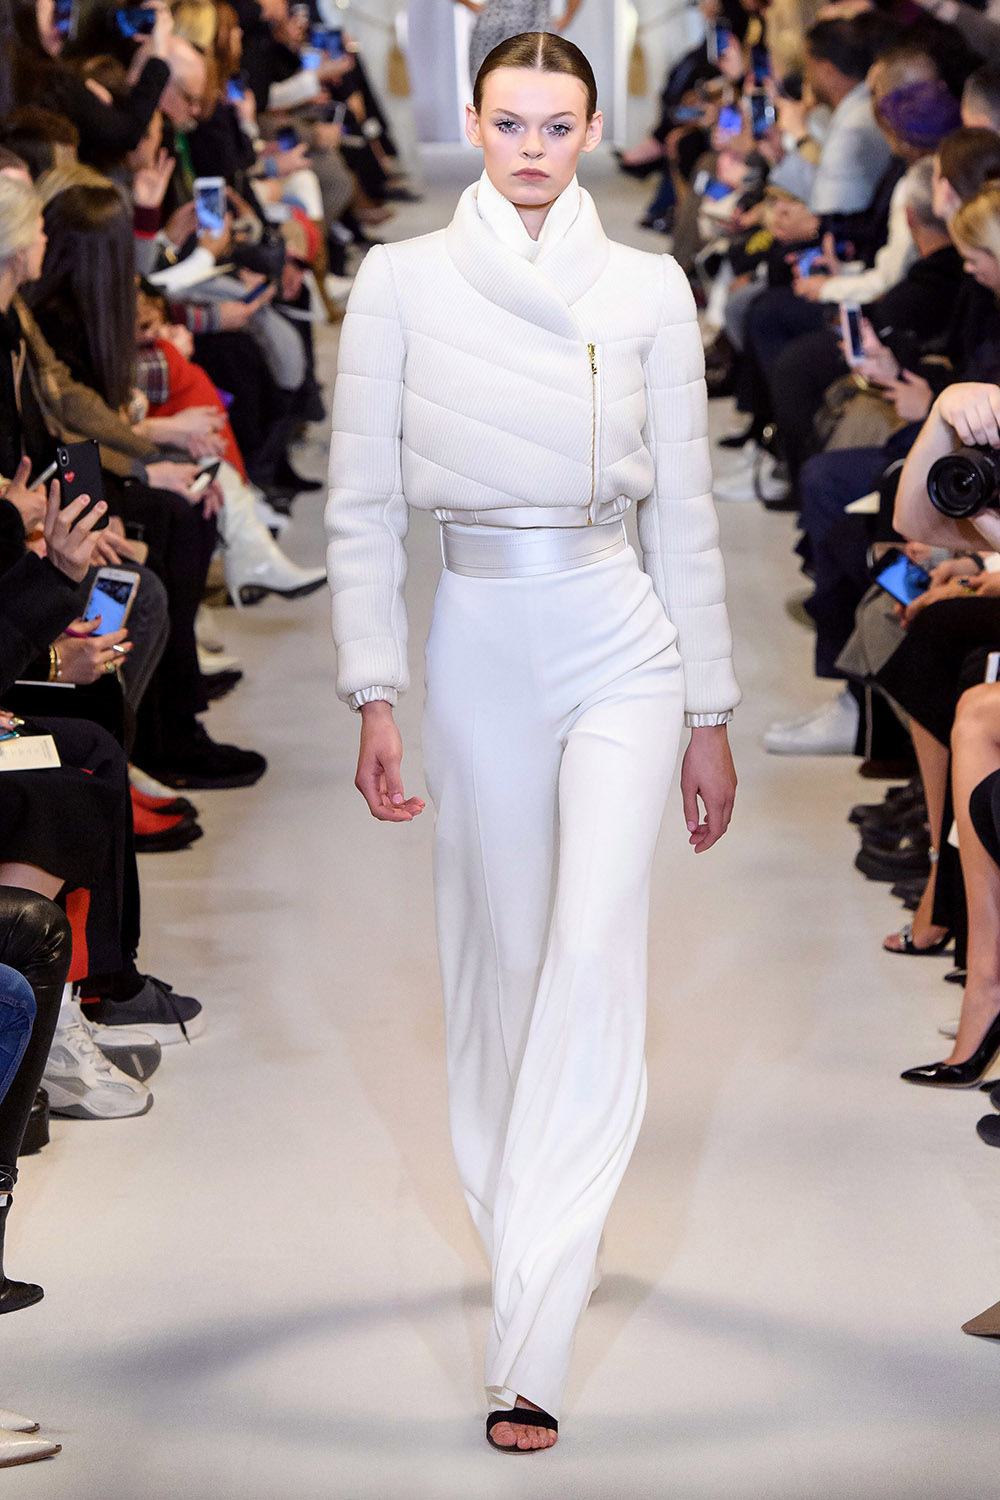 Best NYFW Looks I Brandon Maxwell Fall 2019 Collection #NYFW #Fall2019 #FW19 #Runway